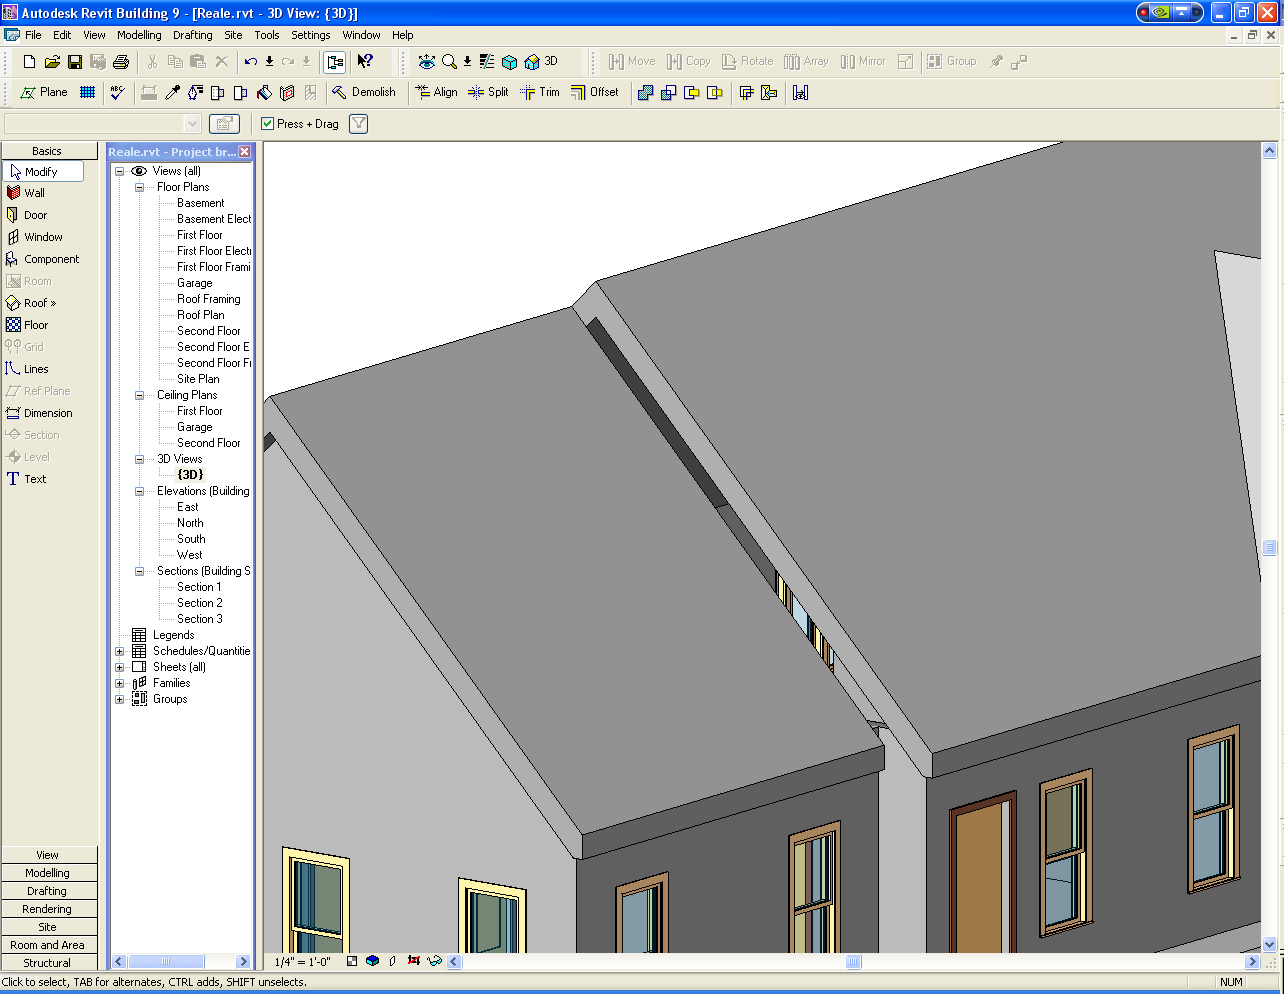 Gable Roof in Revit http://forums.autodesk.com/t5/Autodesk-Revit-Architecture/Gable-wall-above-roof/td-p/1726942